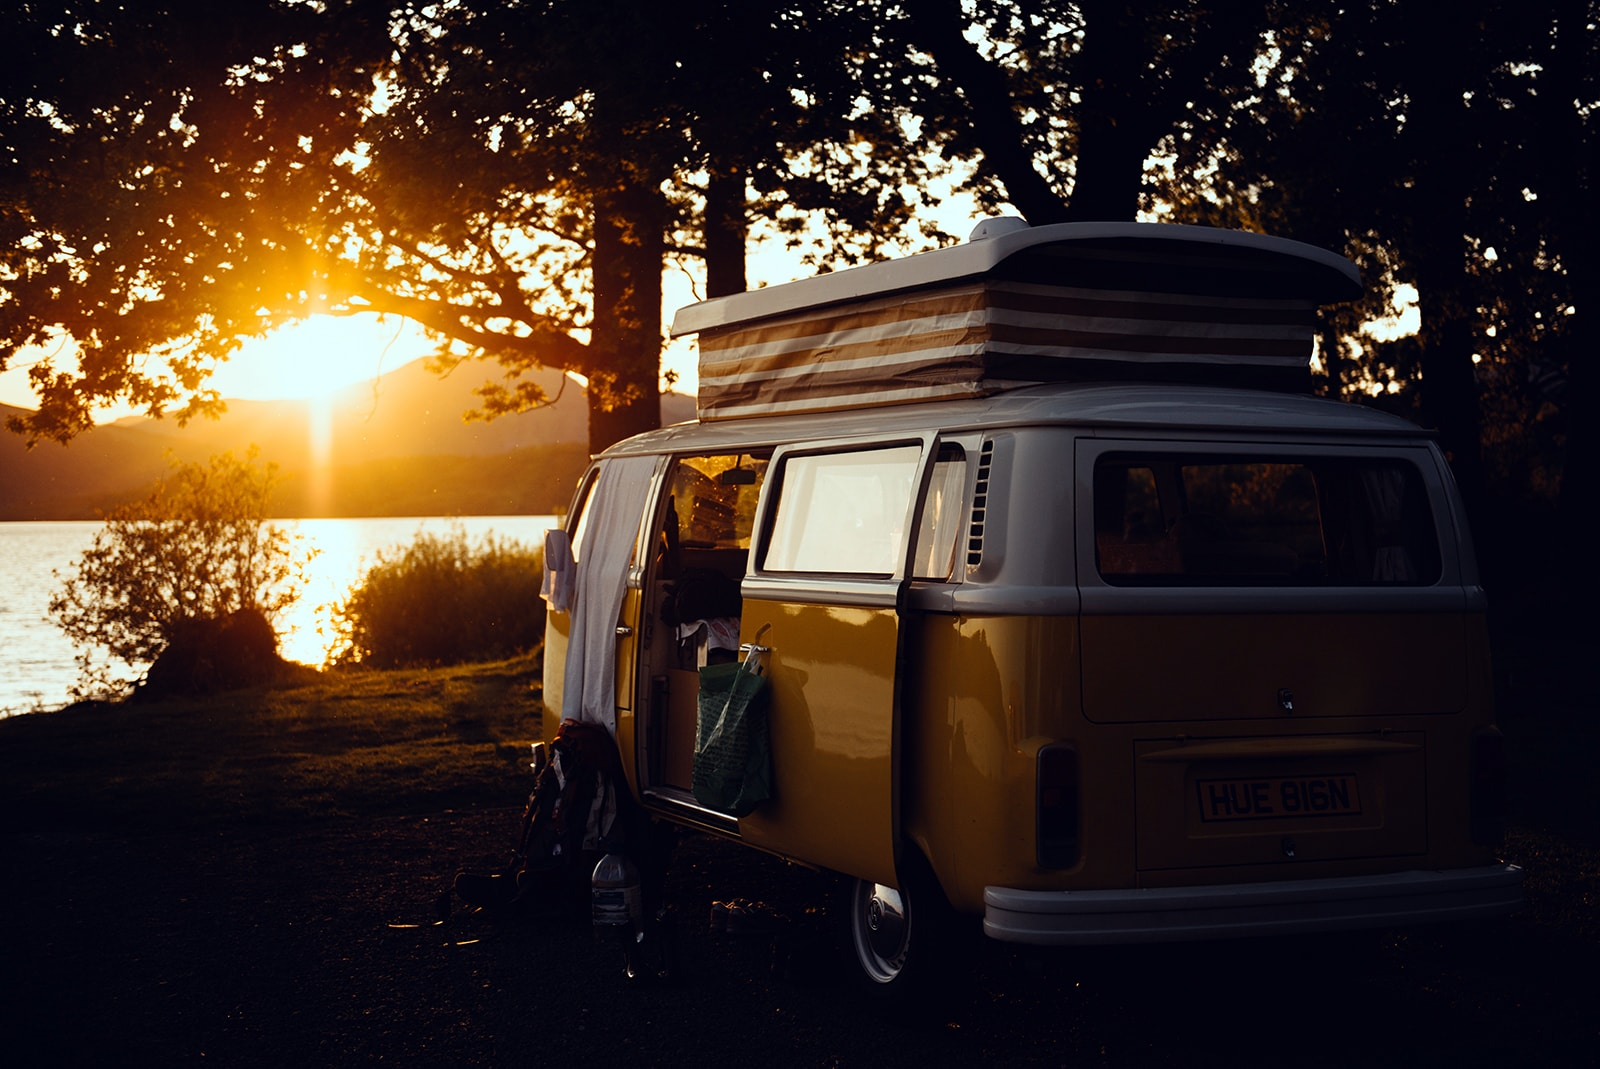 How to Rent an RV: 5 Things You Need to Know Before Renting a Campervan in 2019